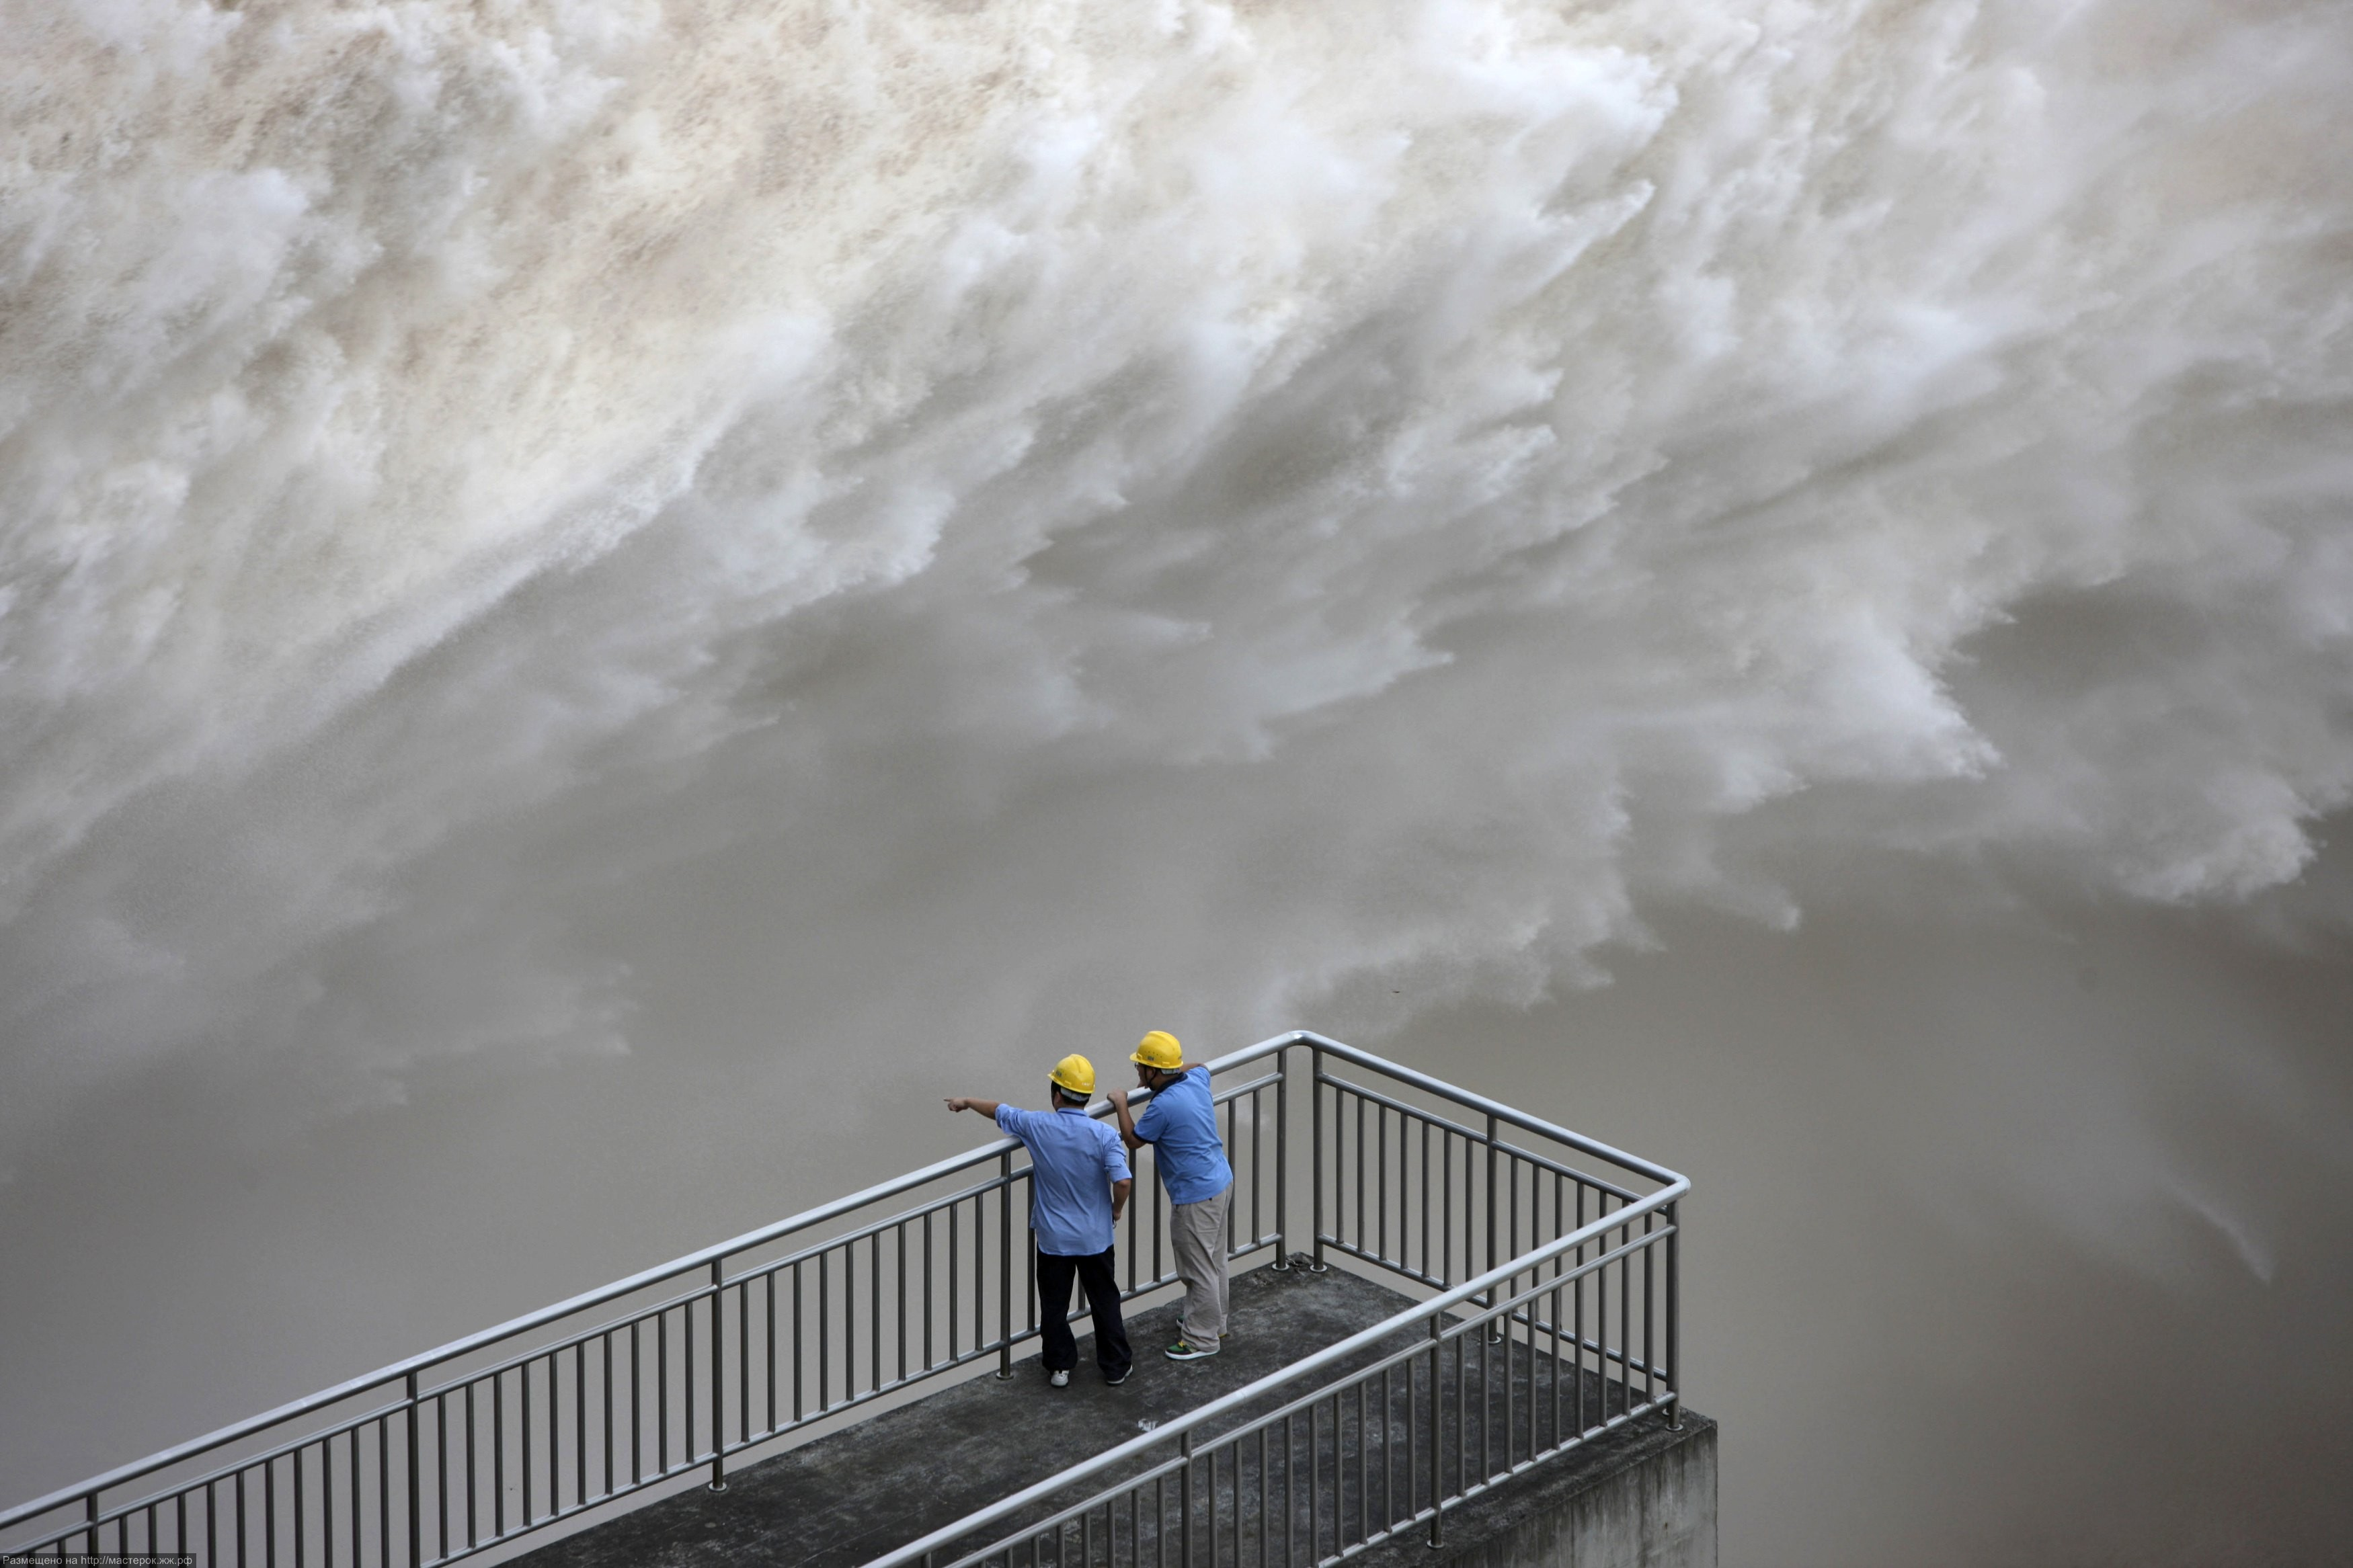 The Three Gorges Dam discharges water to lower the level in a reservoir in Yichang